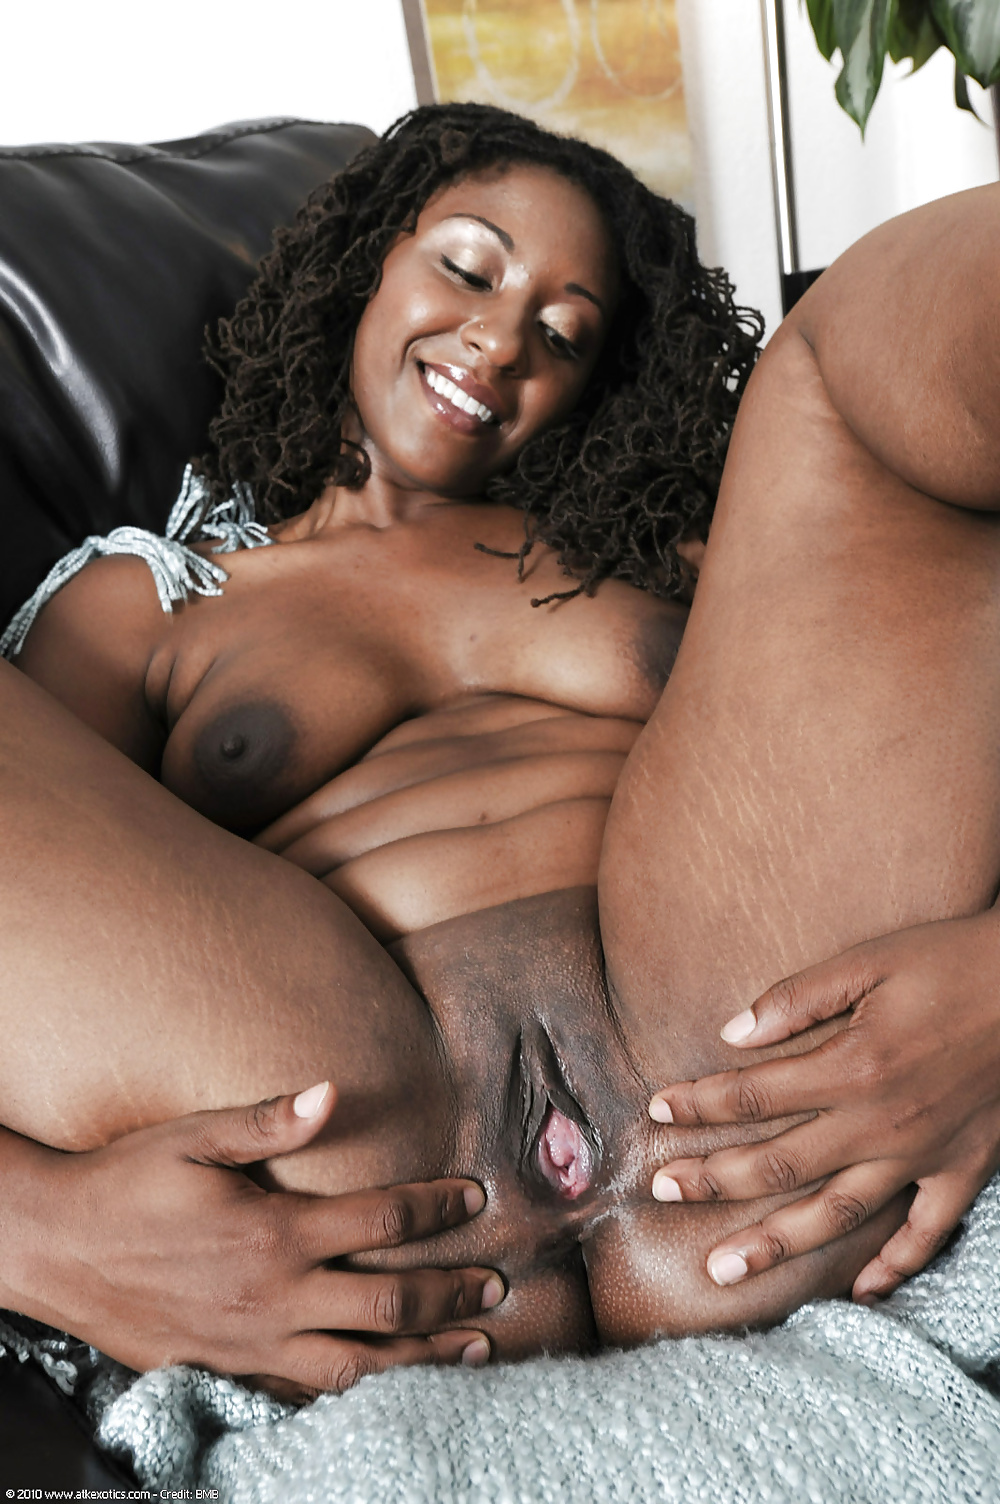 Black mature free porno archive, shower bodybuilder women porn